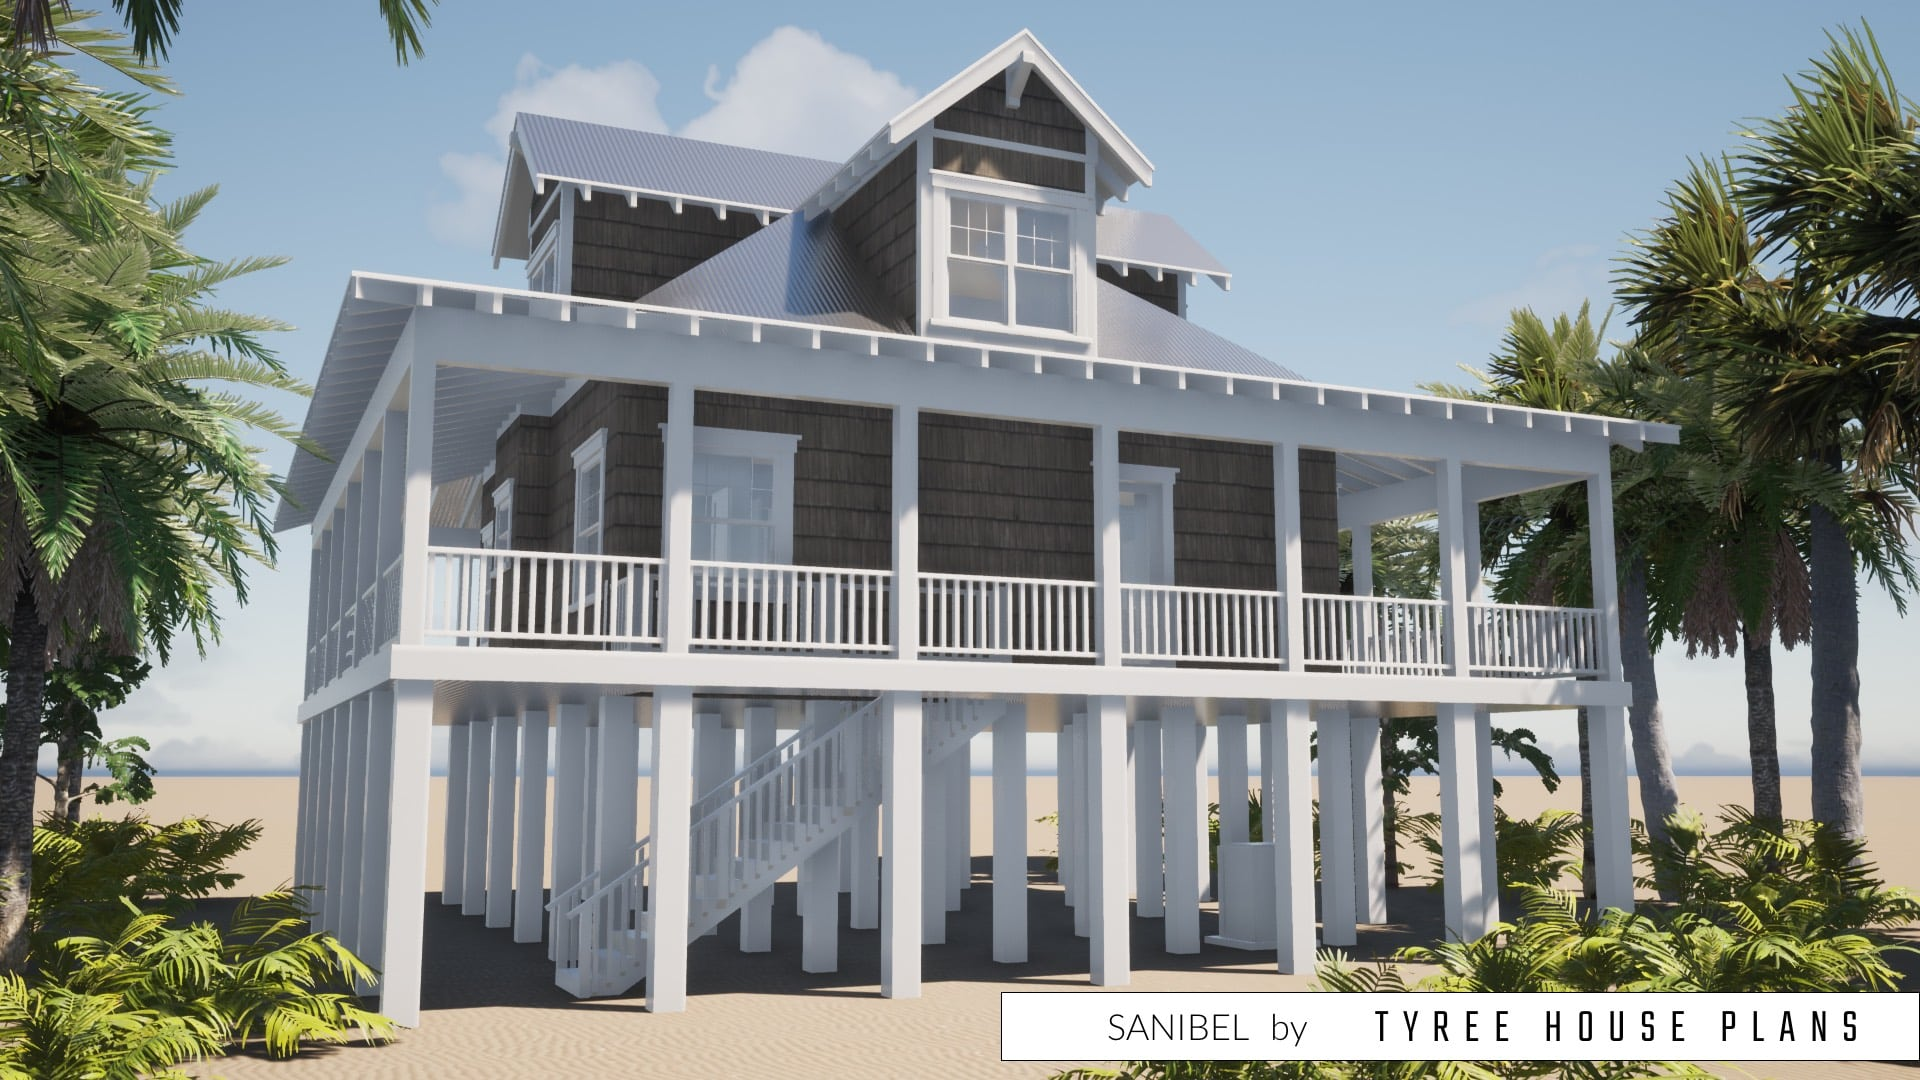 Beach House with Wrap-Around Porch. 2 Bedrooms. Tyree House Plans.